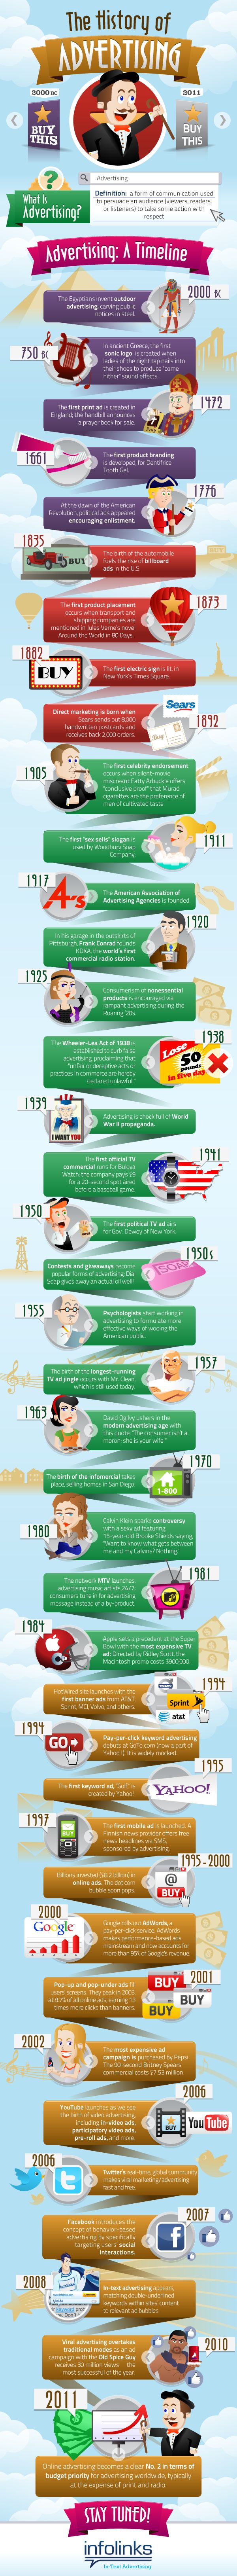 Everything You Need To Know About The History Of Advertising In One Cool Infographic